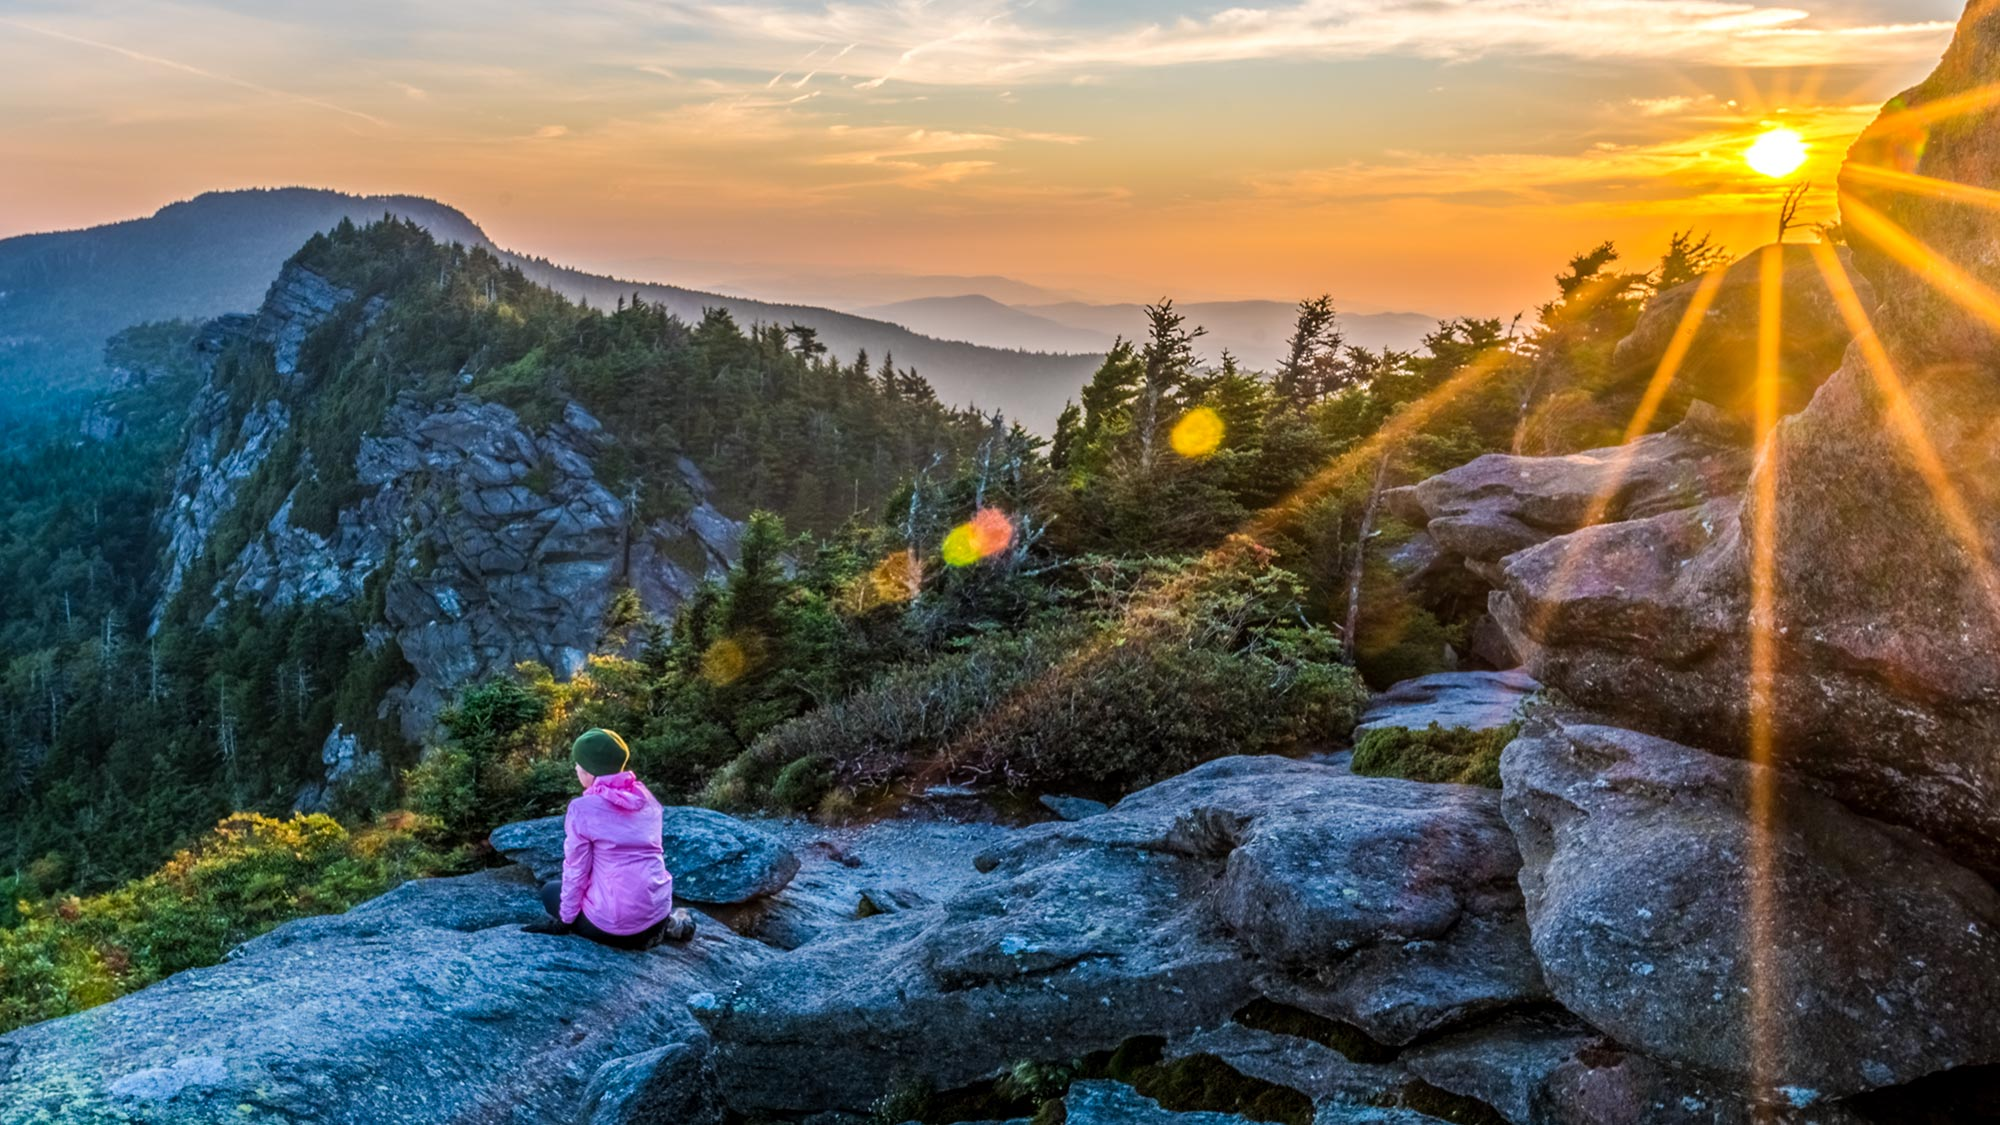 Person in pink coat sitting on a rock on the side of a mountain, sunrise in the background, looking over blue ridge mountains